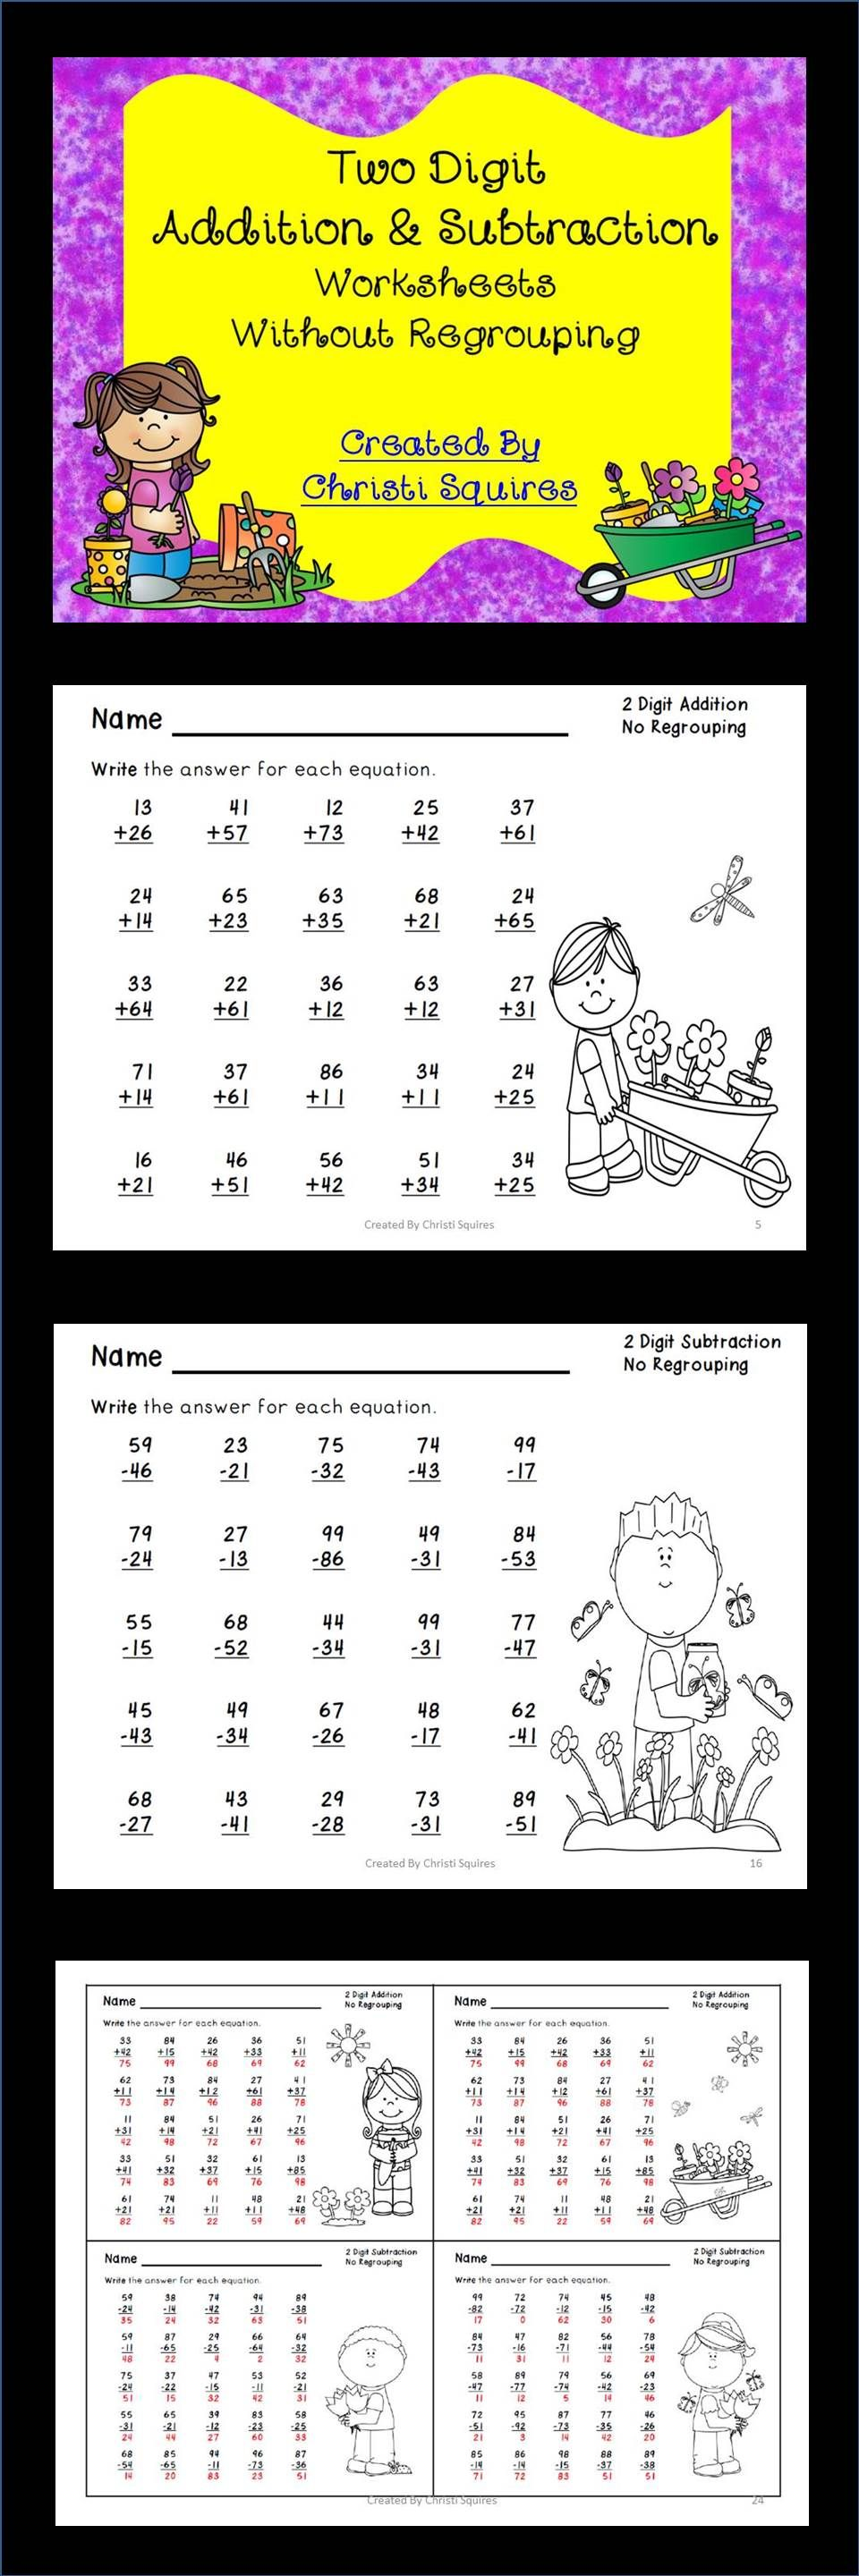 Two Digit Addition Subtraction Worksheets Without Regrouping Addition And Subtraction Worksheets Teaching Math Addition And Subtraction [ 2880 x 960 Pixel ]